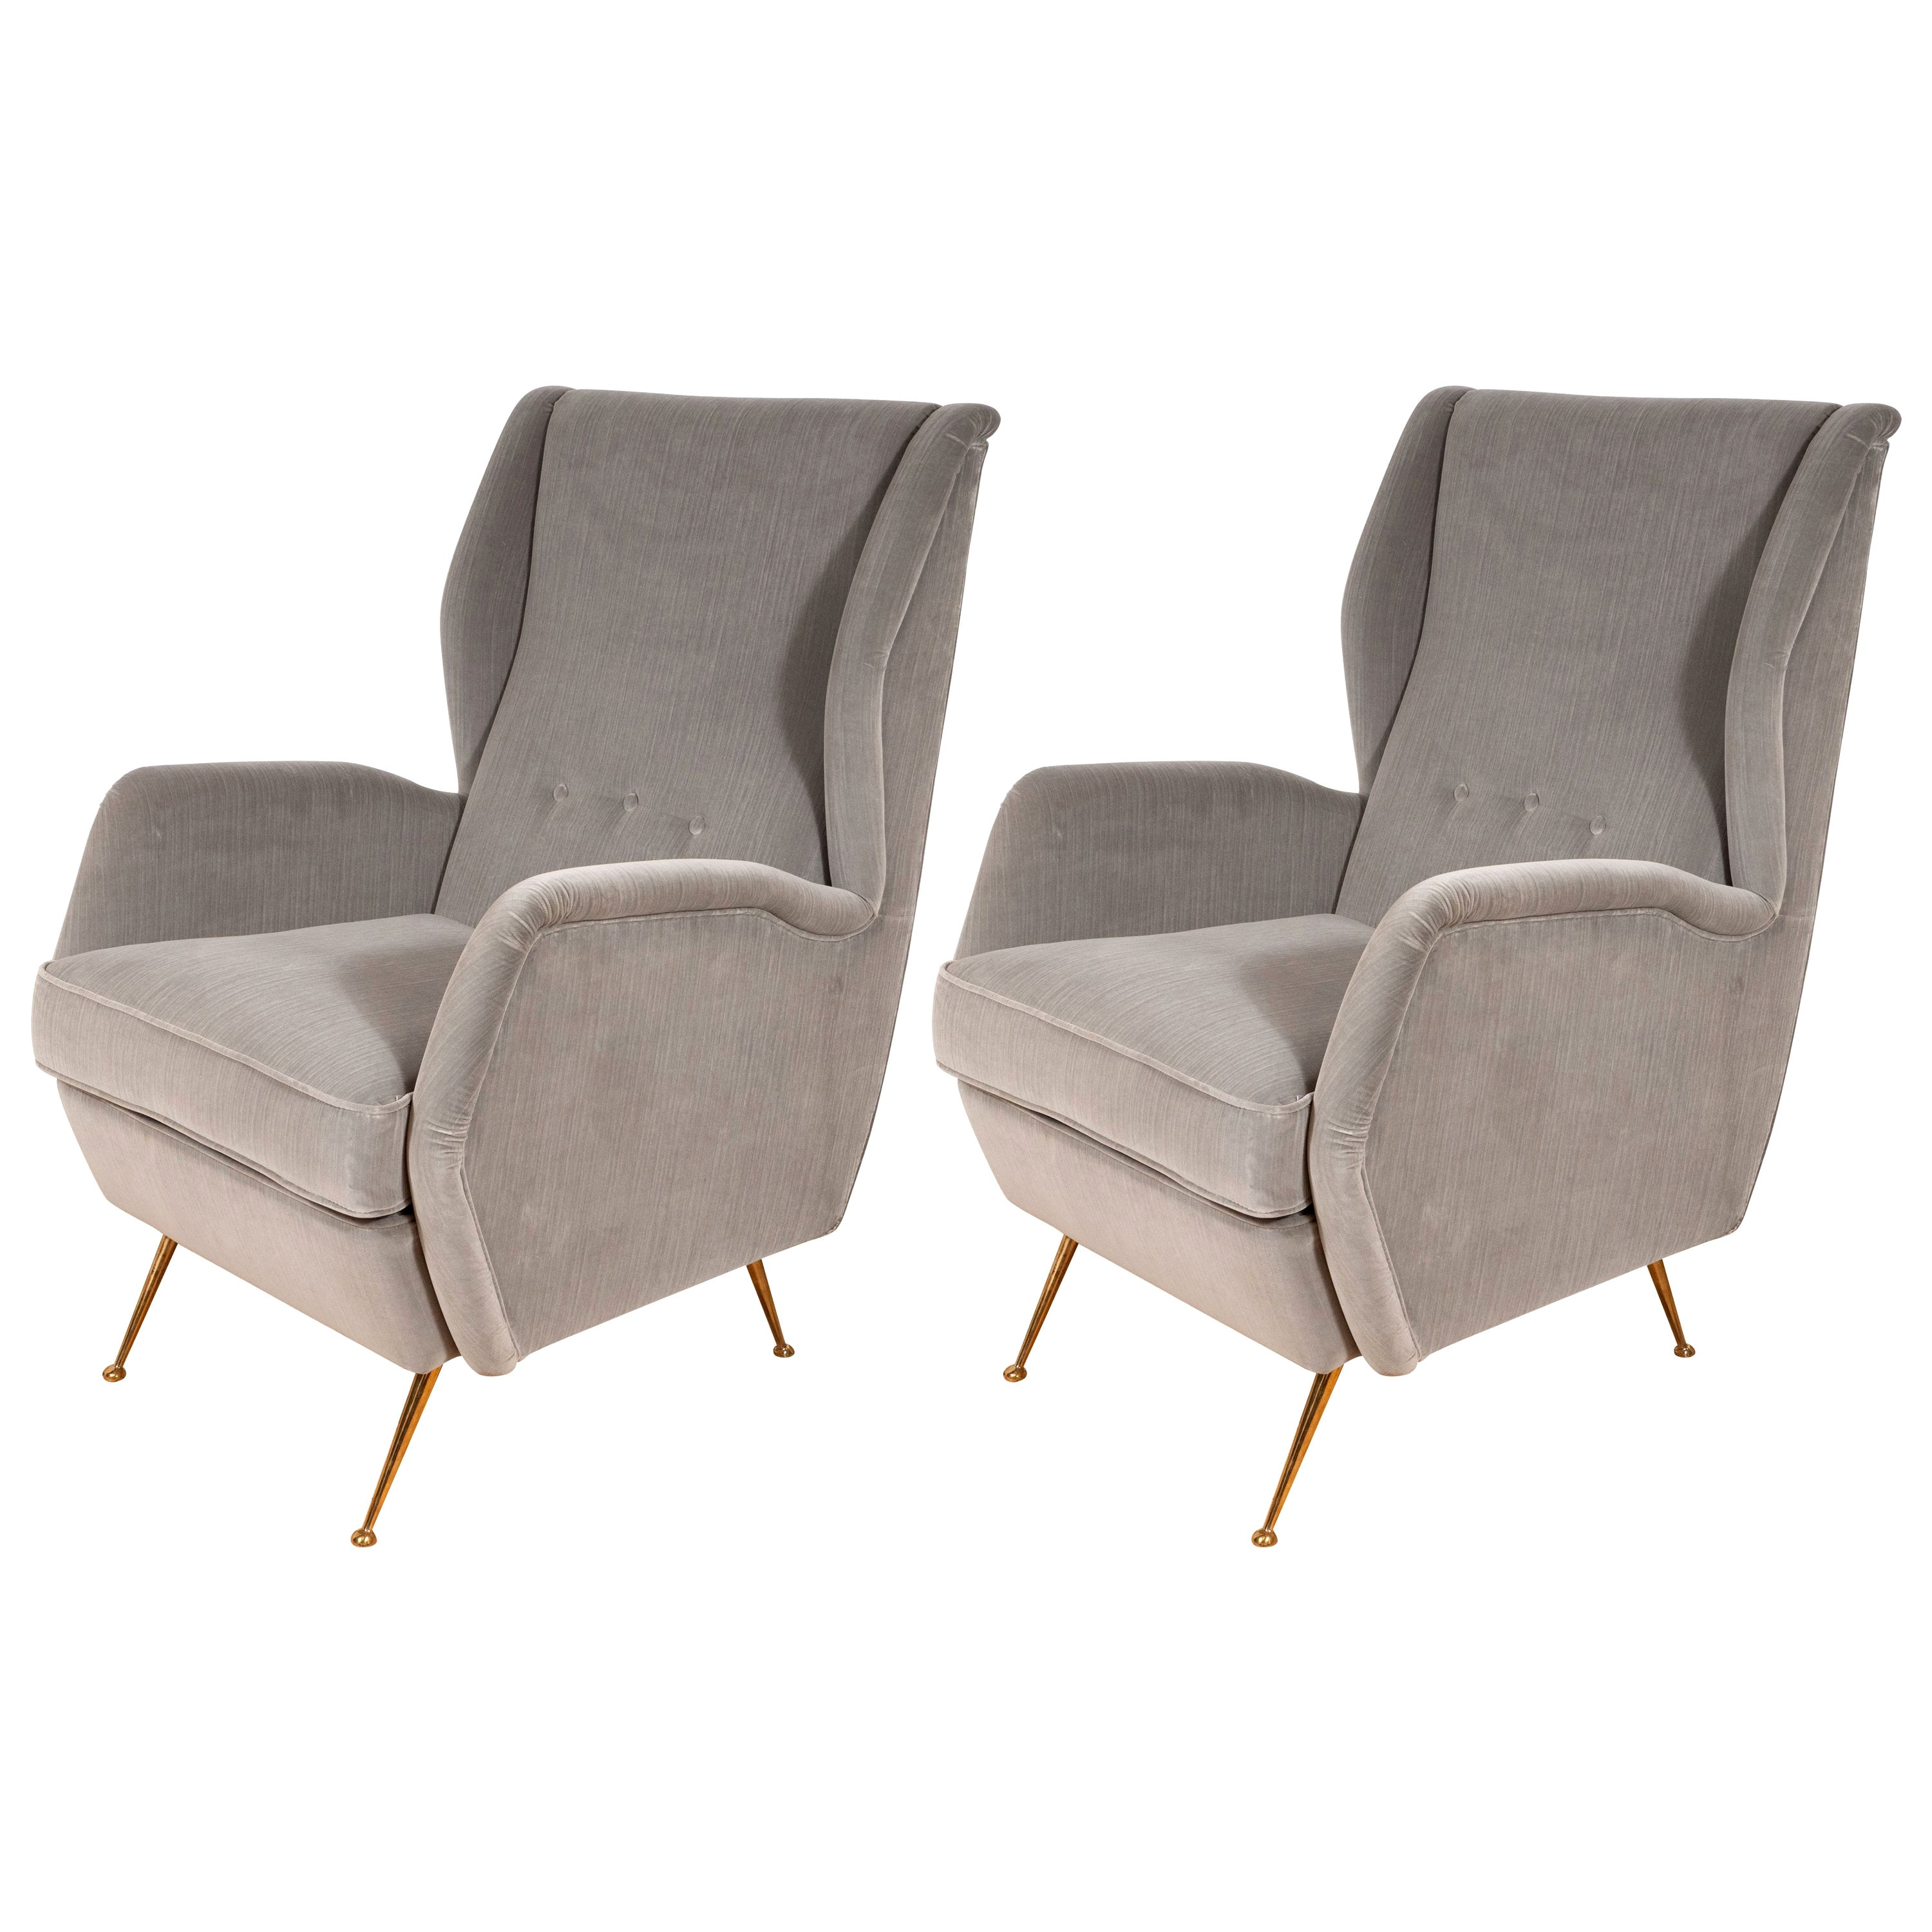 Pair of Custom Made Sculptural Lounge Chairs in Grey Velvet, Italy